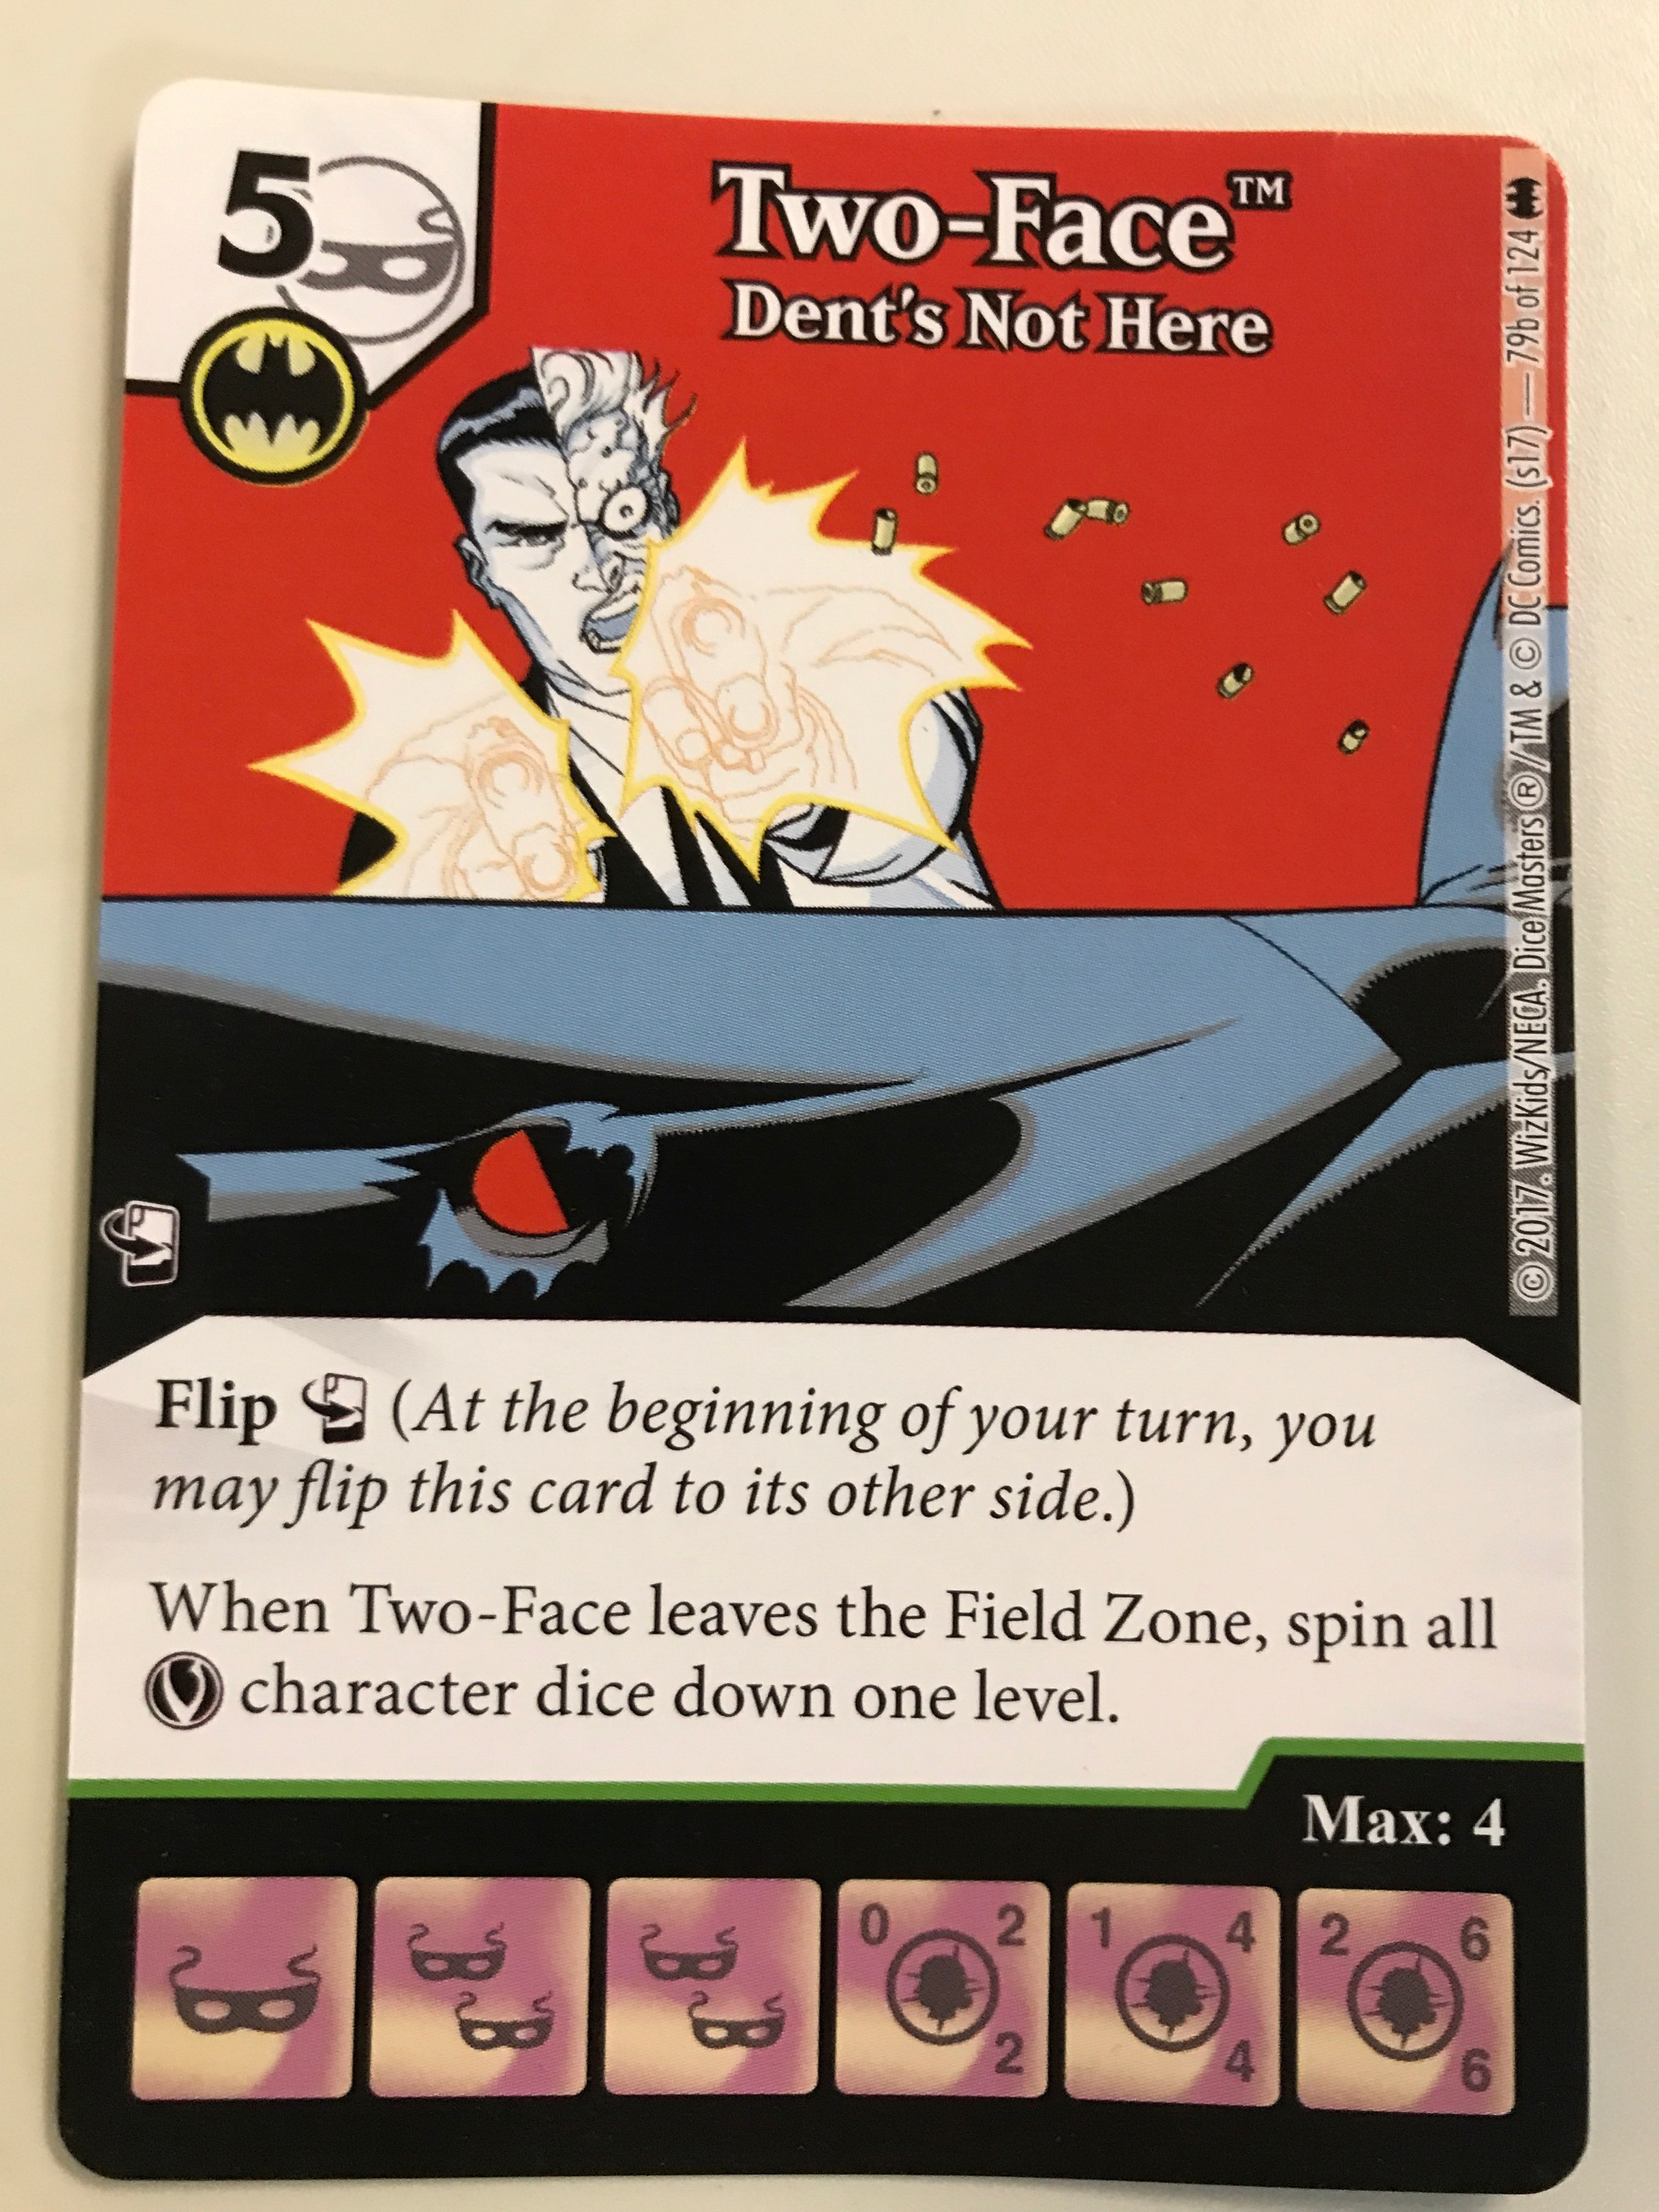 Two-sided cards can have two different affiliations, shown here is the Batman Affiliation.